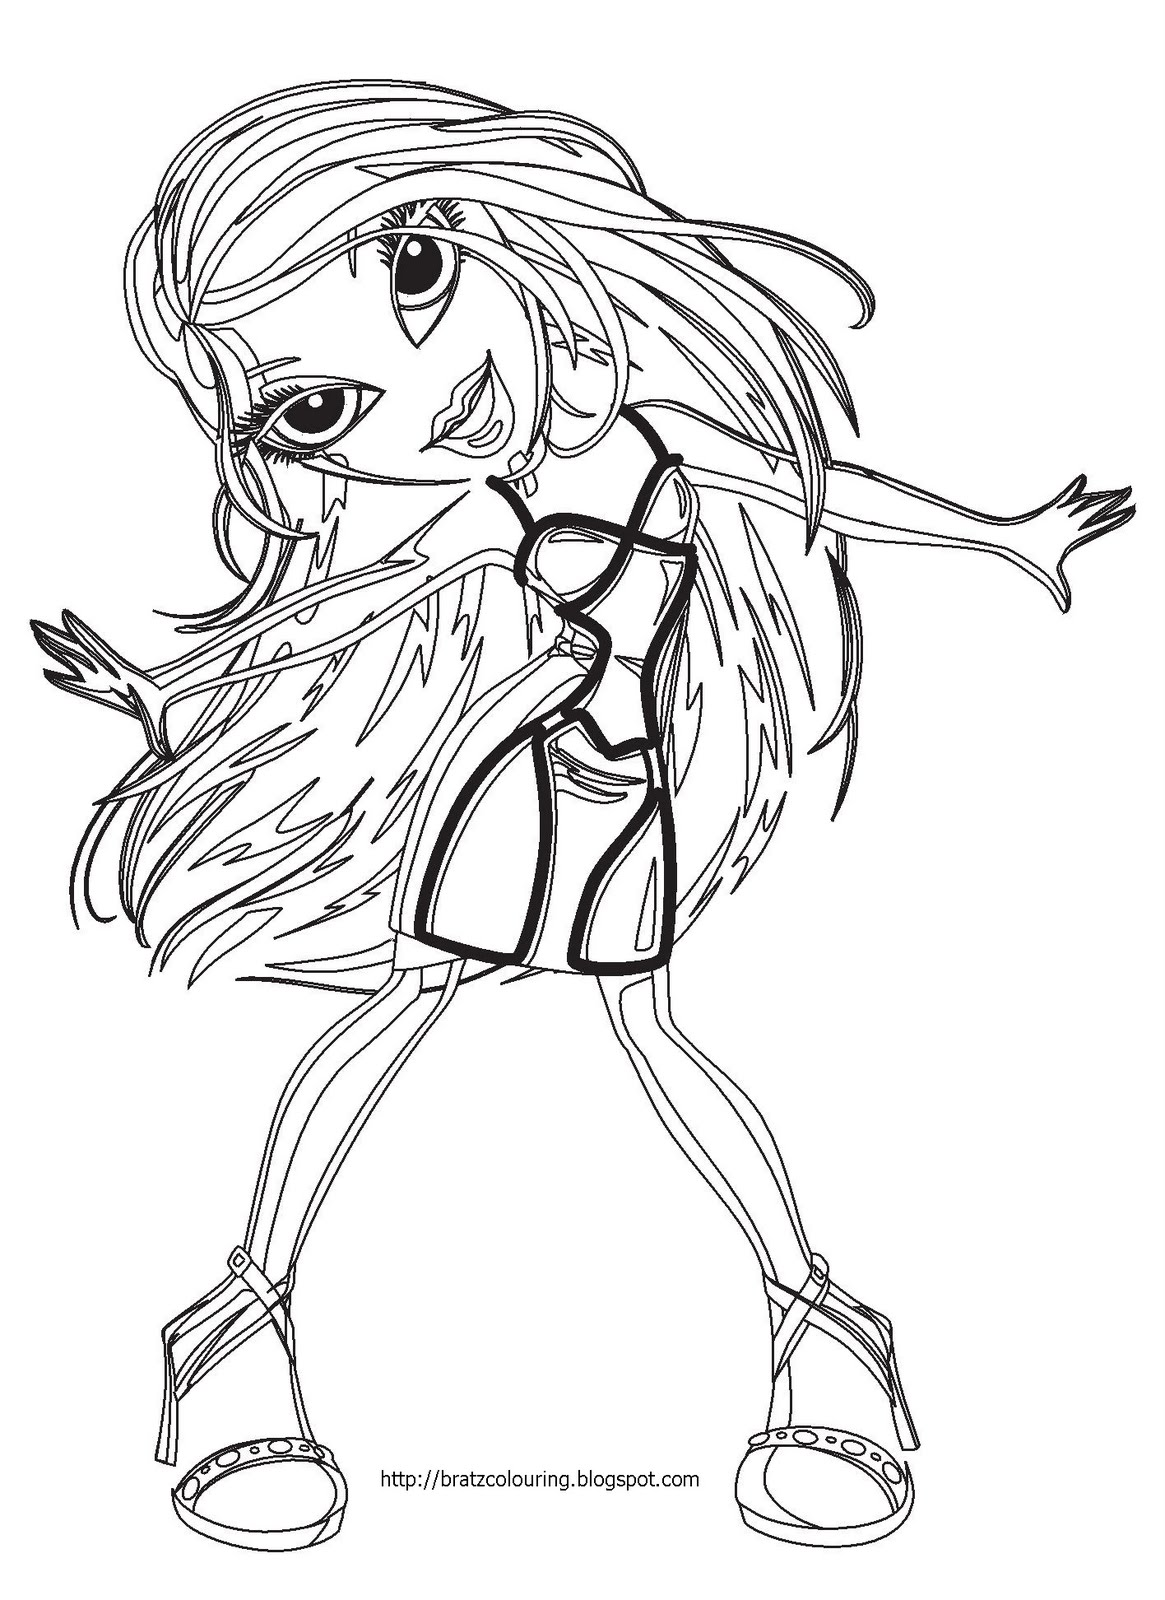 free bratz coloring pages - photo#35